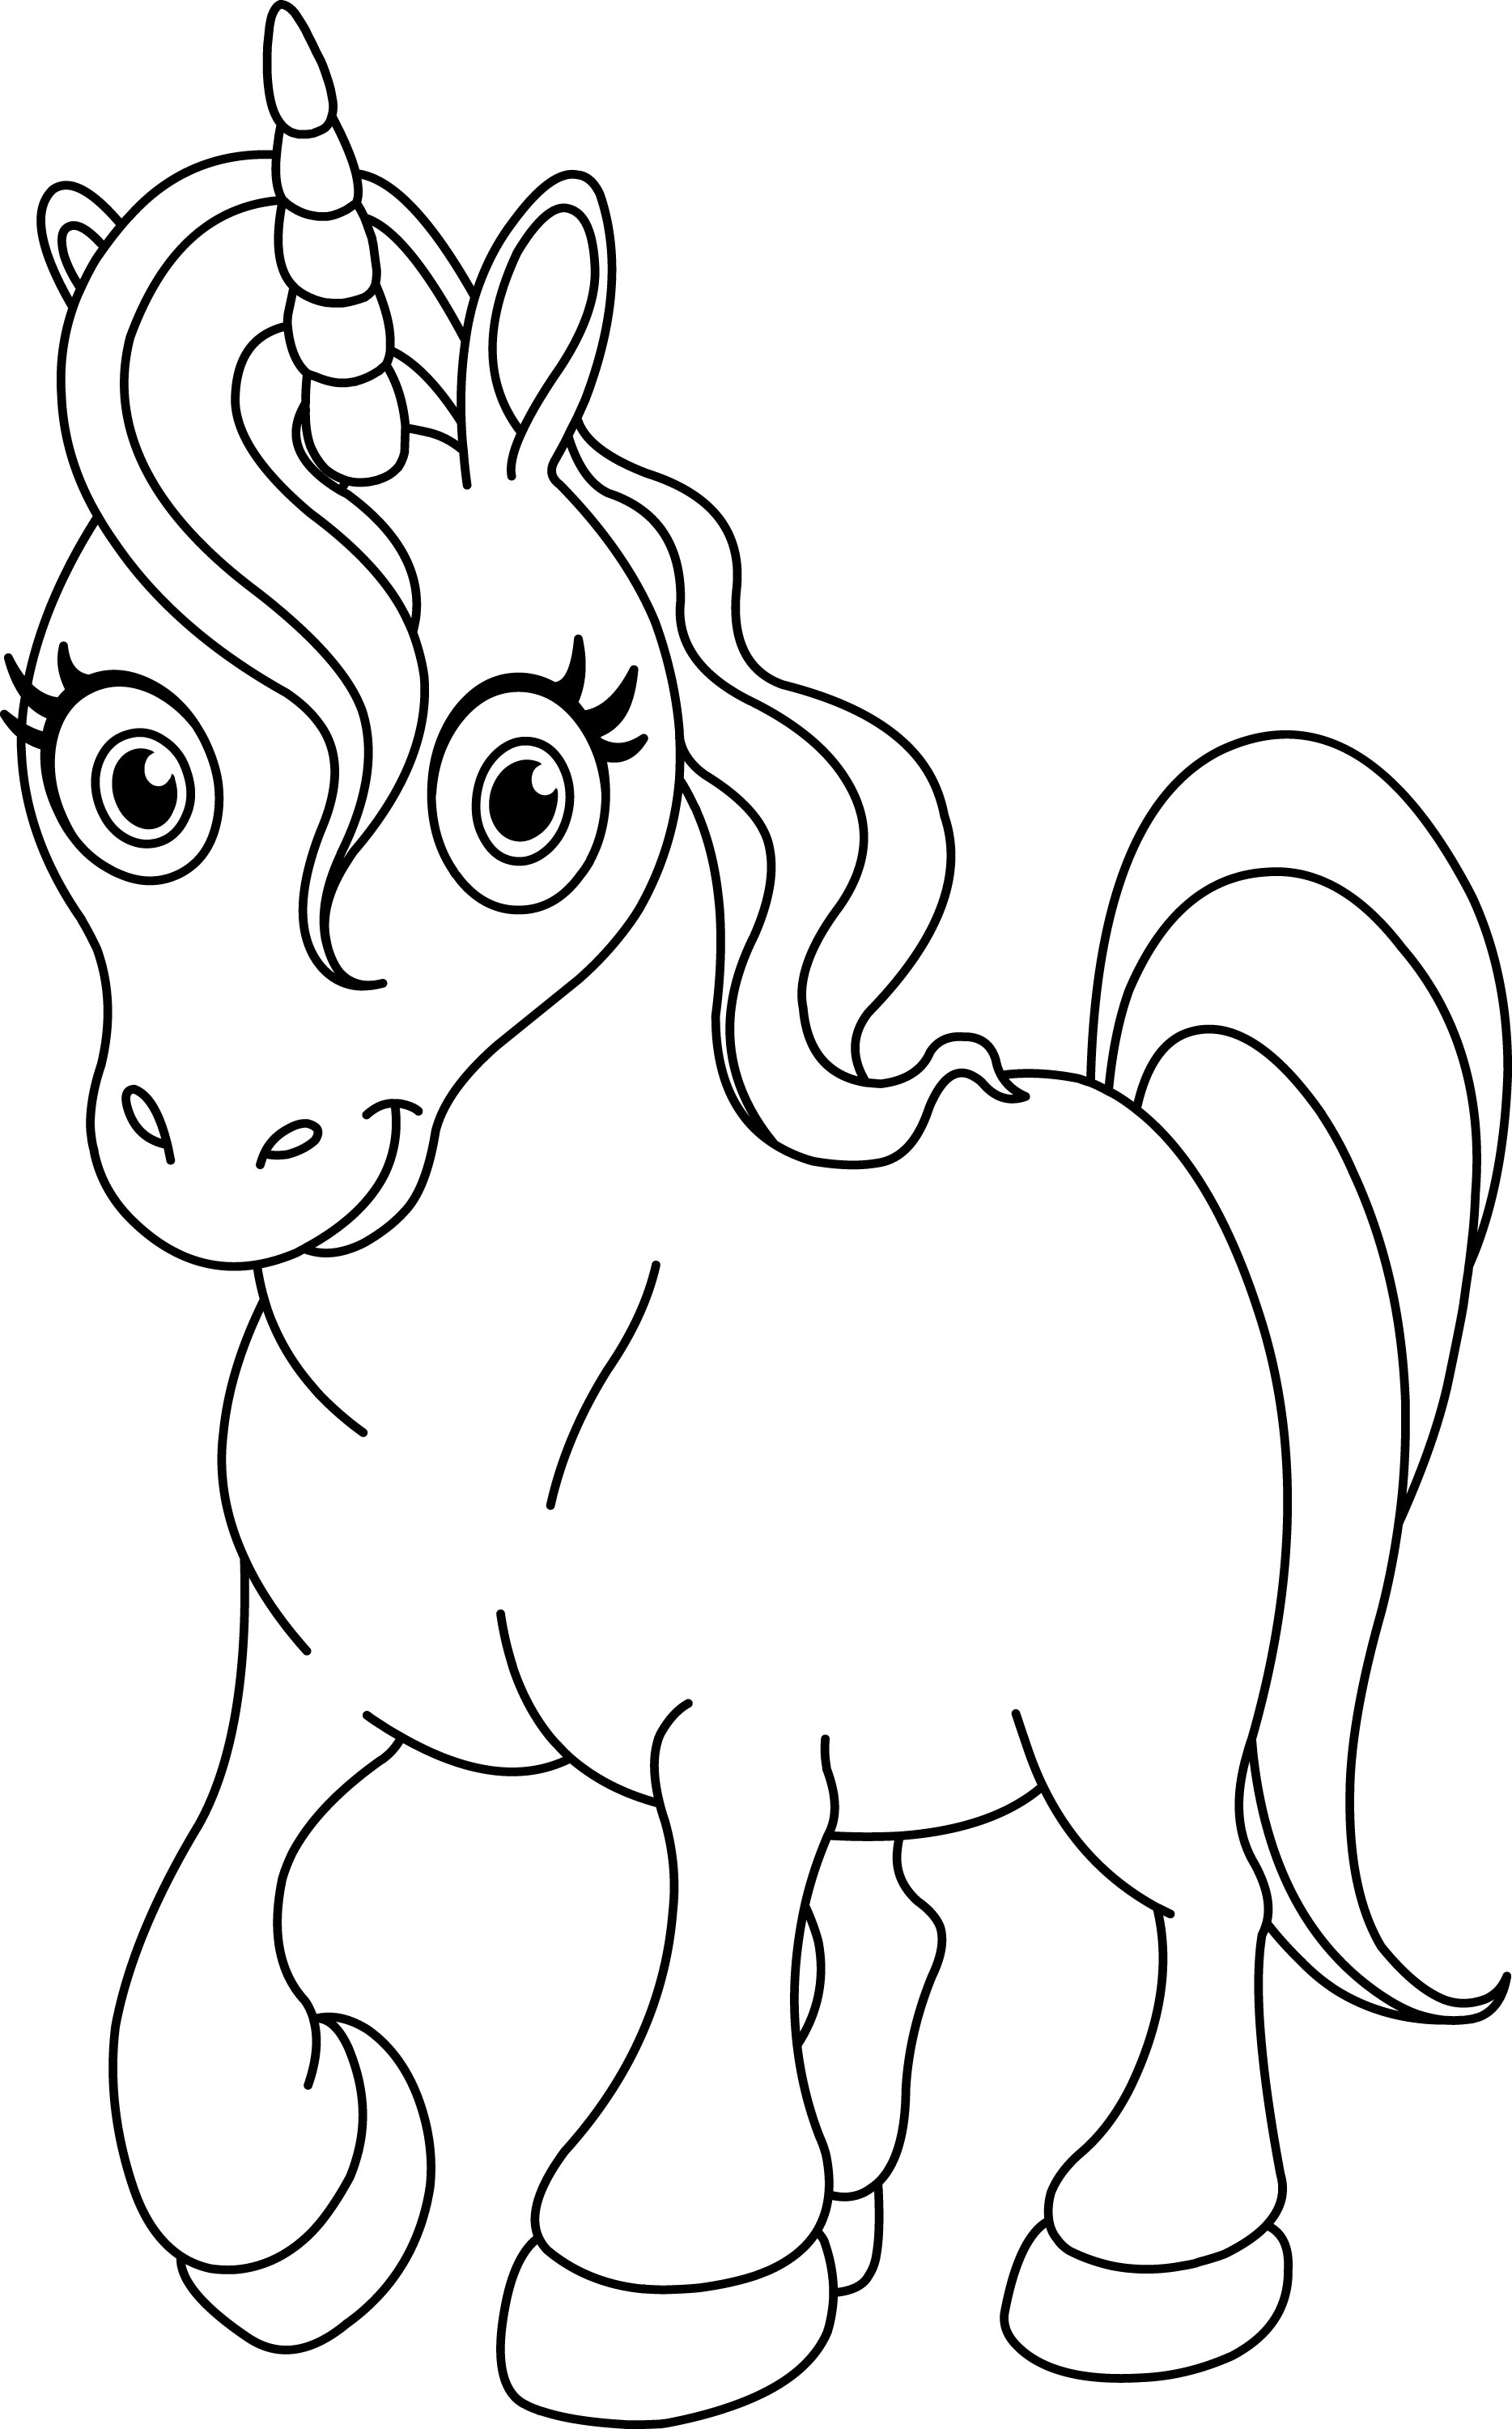 Unicorn coloring pages to print - Unicorn Coloring Pages